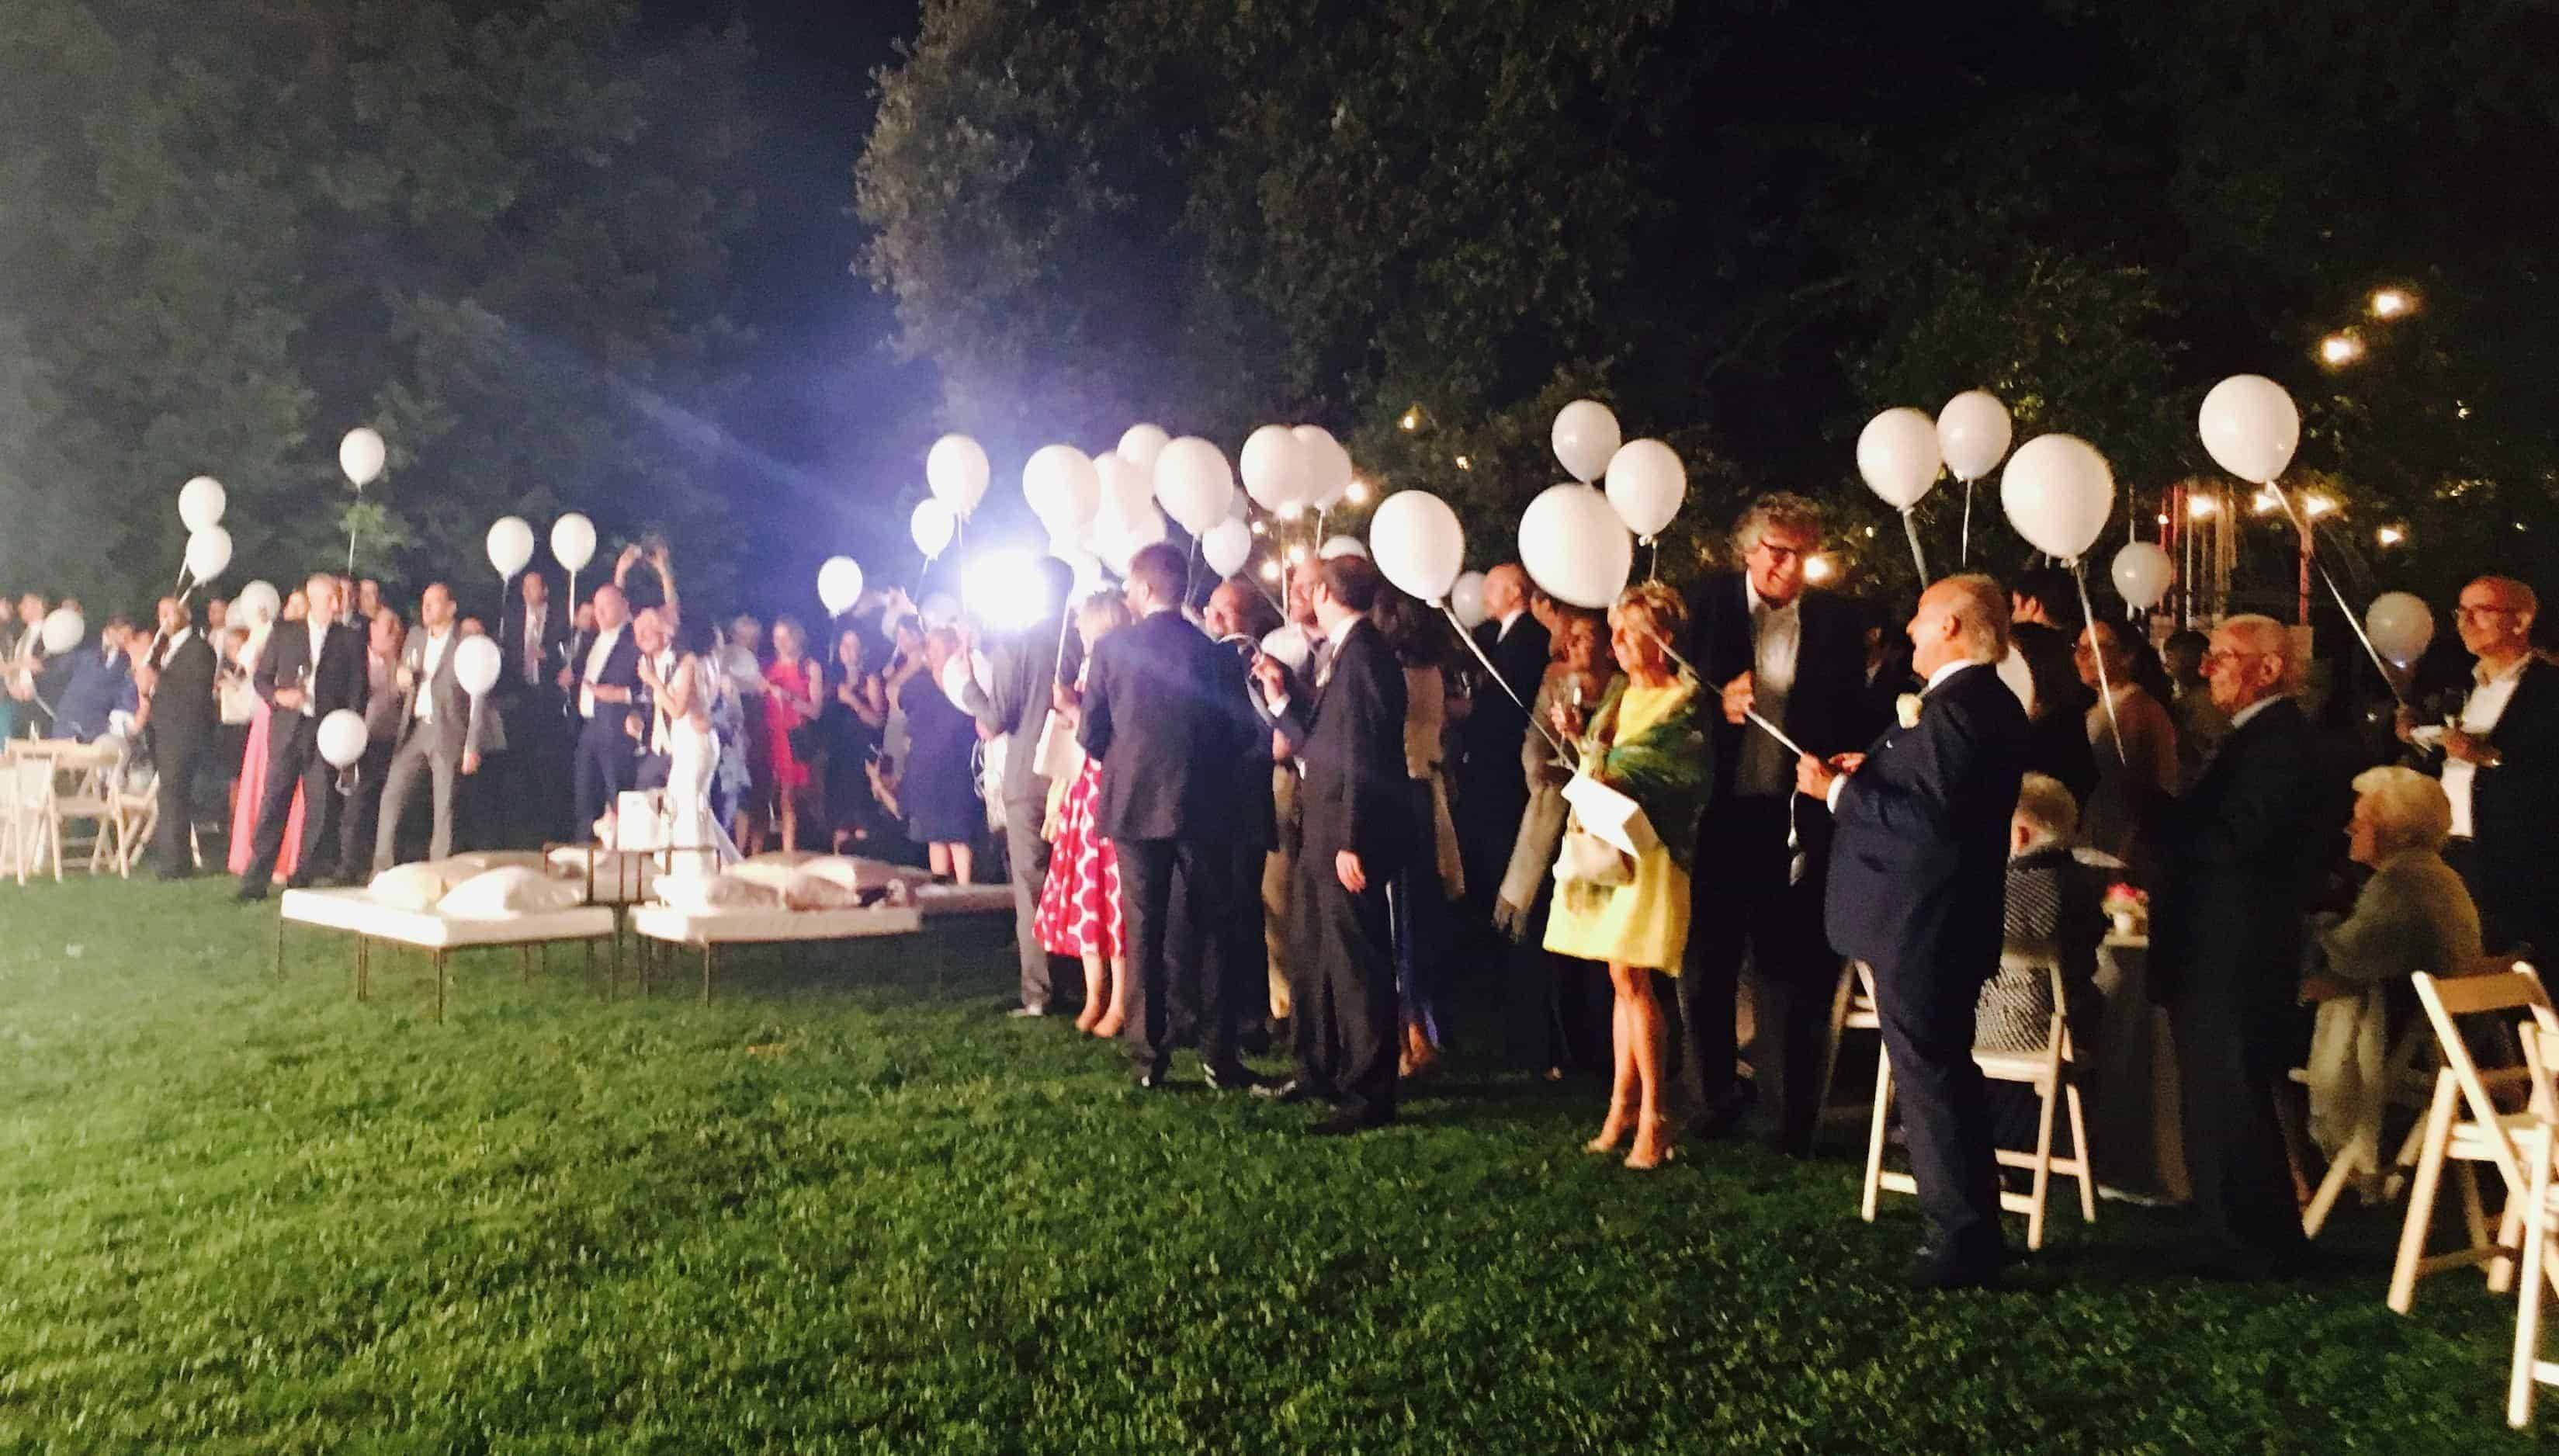 fireworks lightbaloon italian wedding - Luxury Wedding Gallery